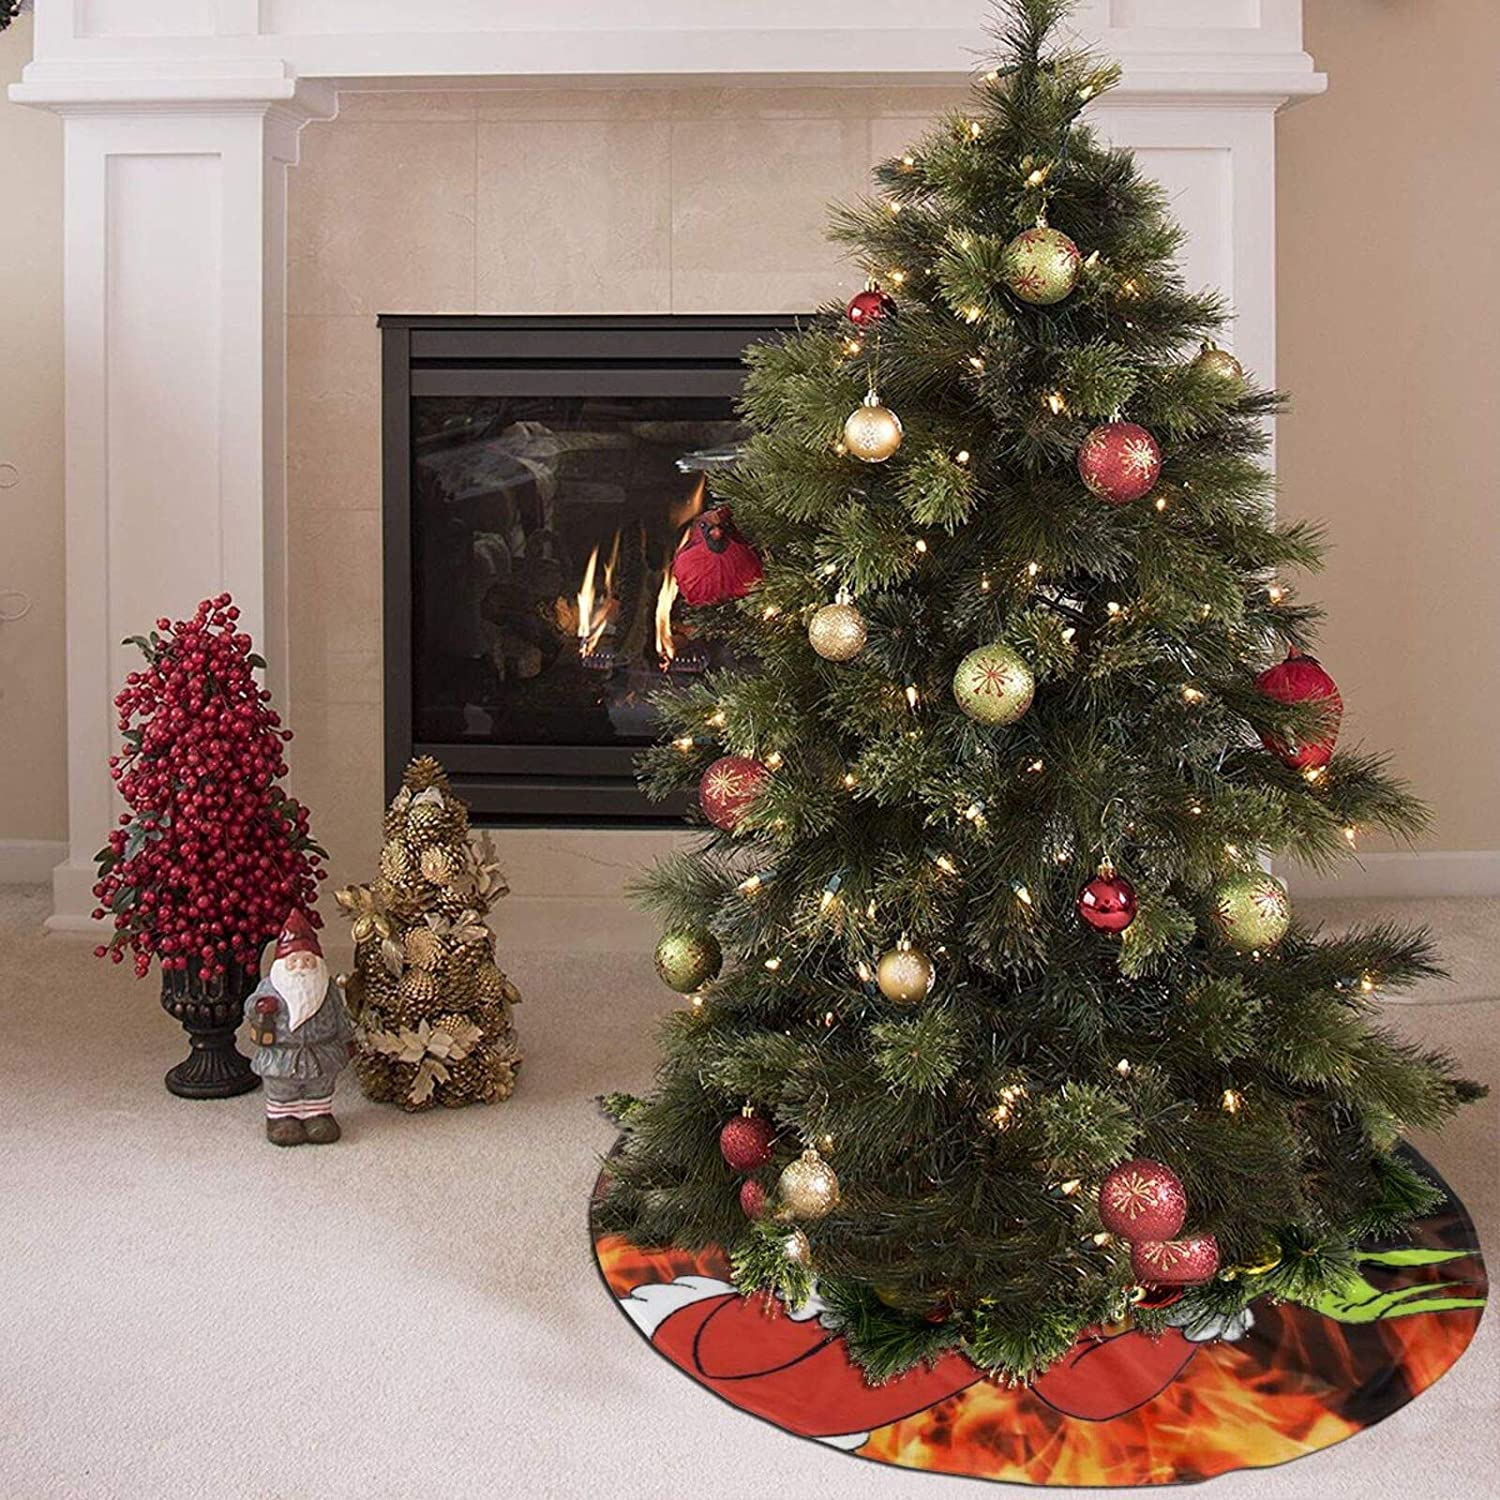 36 Inch How The Grinch Stole Christmas Christmas Tree Plush Skirt Xmas Tree Skirt Christmas Party Decorations Holiday Tree Ornaments Christmas Decoration for Trees Home Decorations